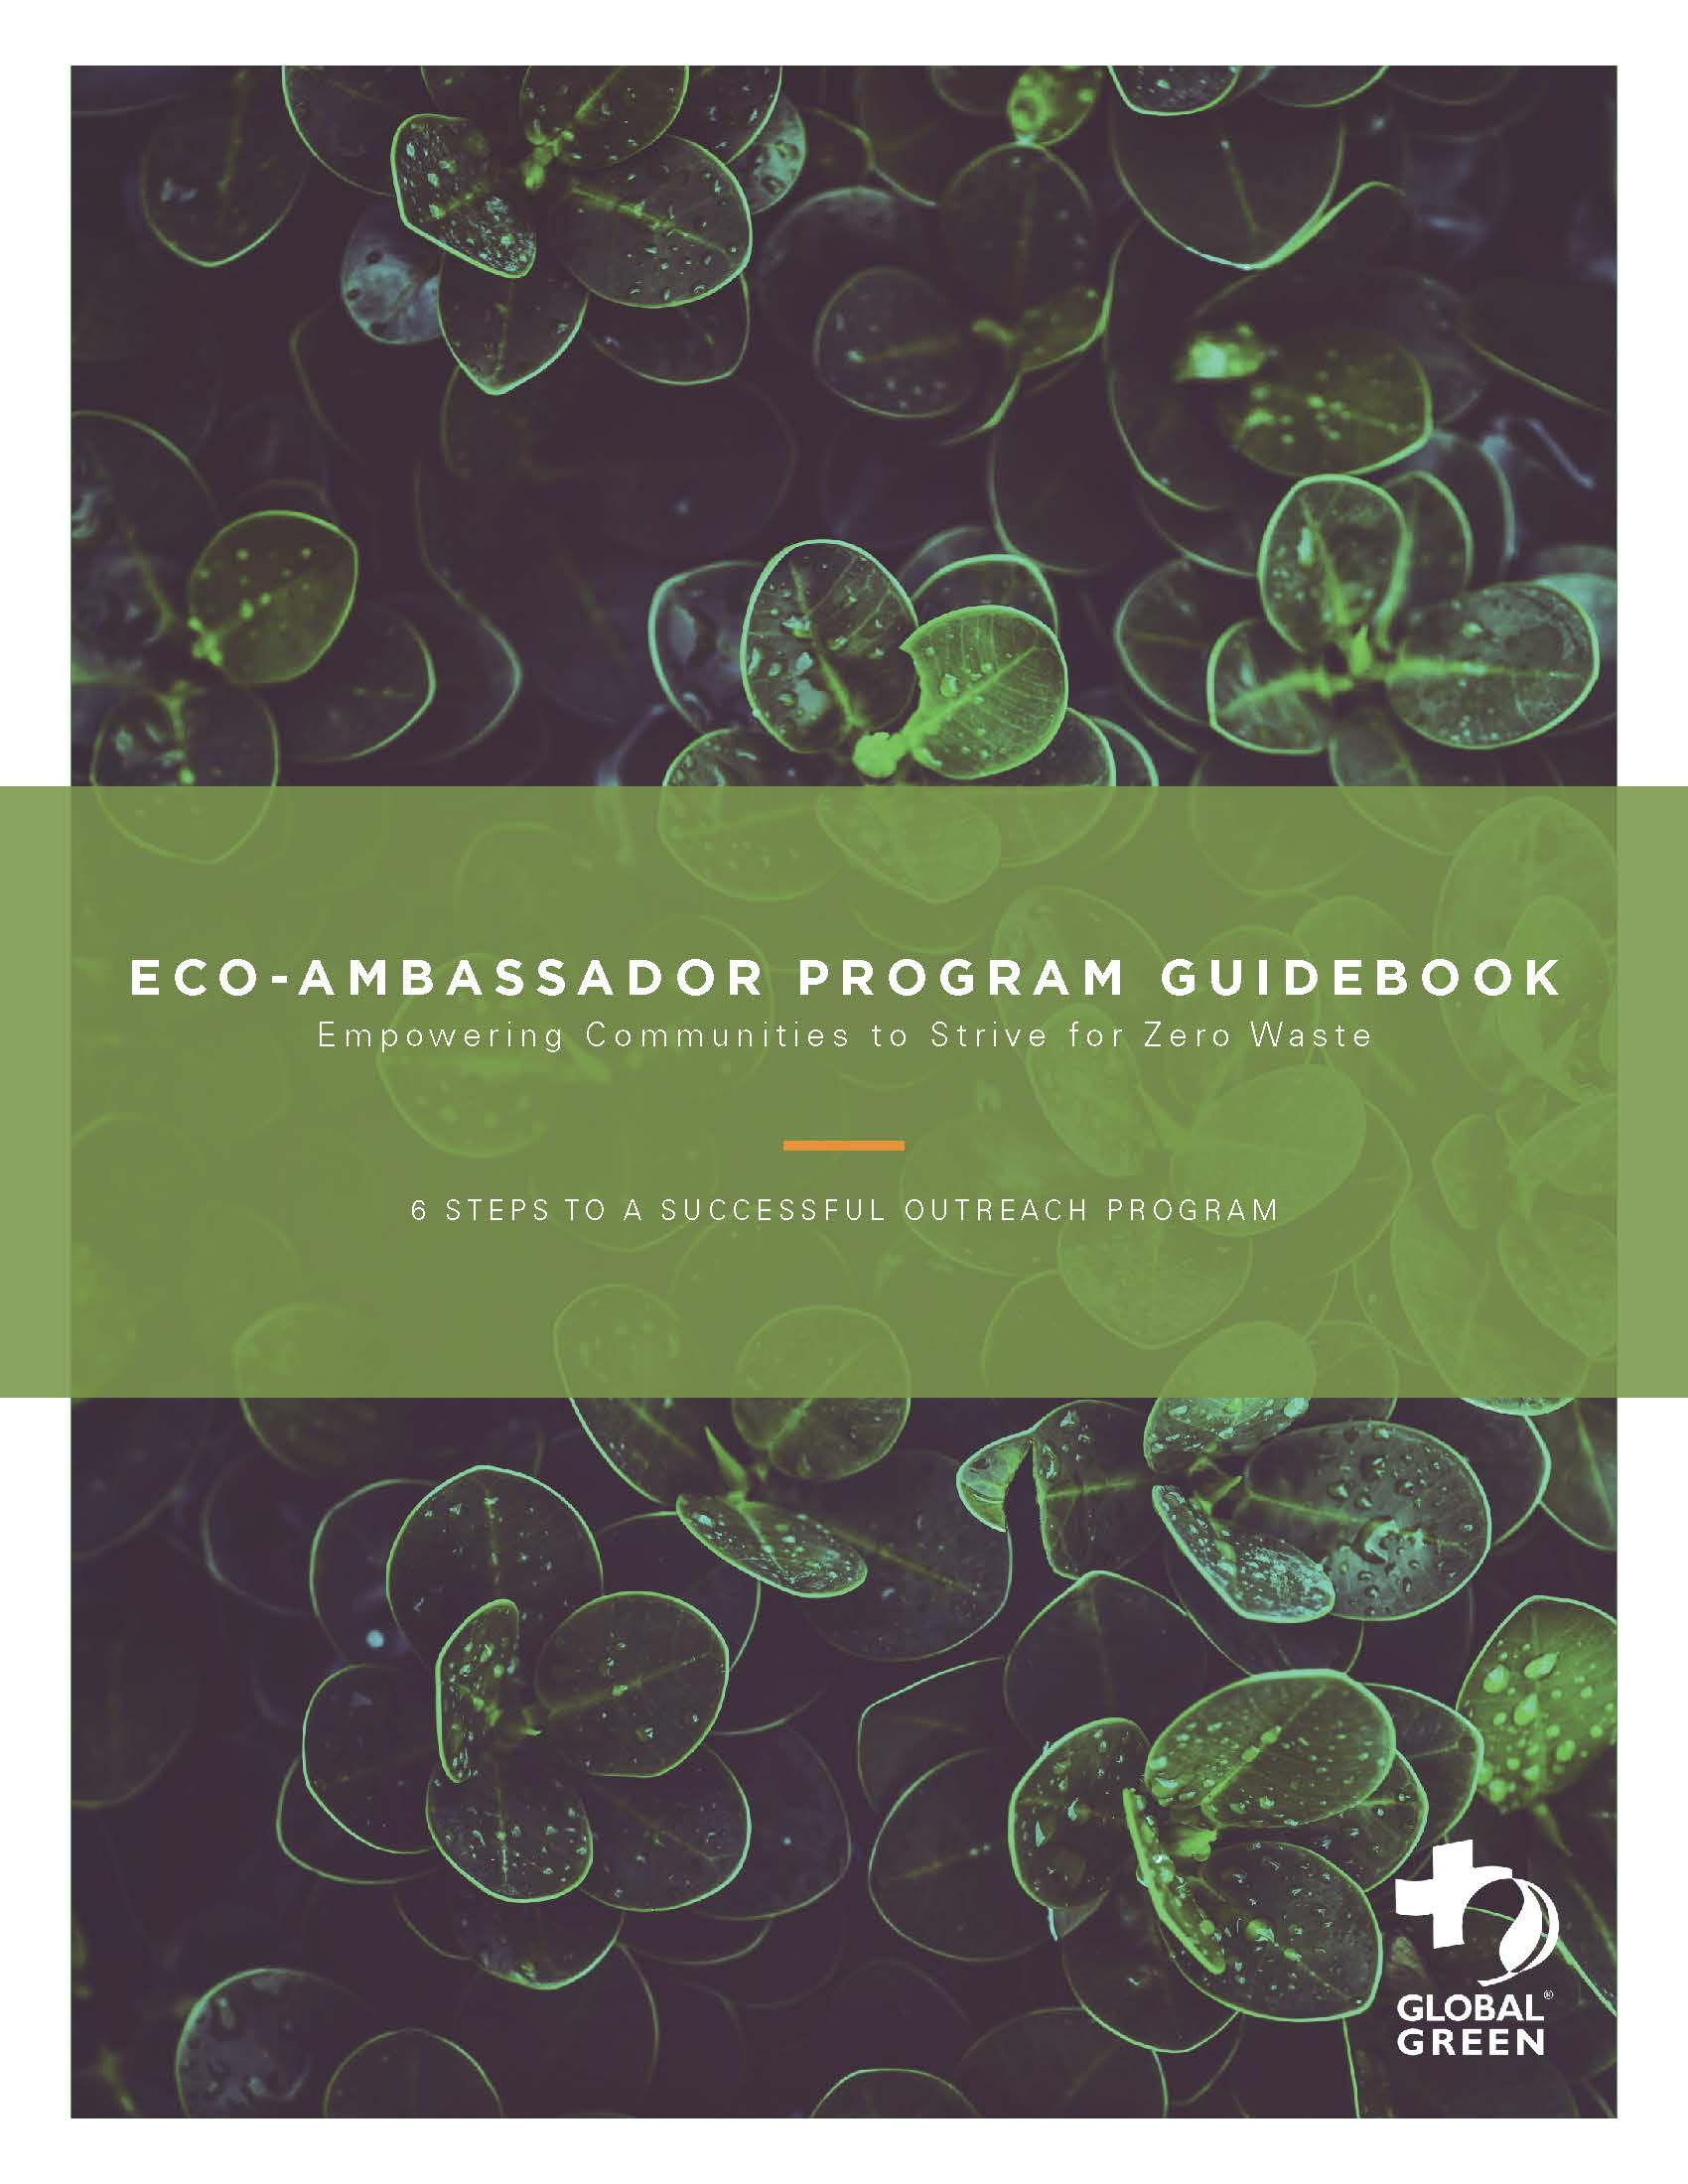 Figure 6: Eco-Ambassador Program Guidebook